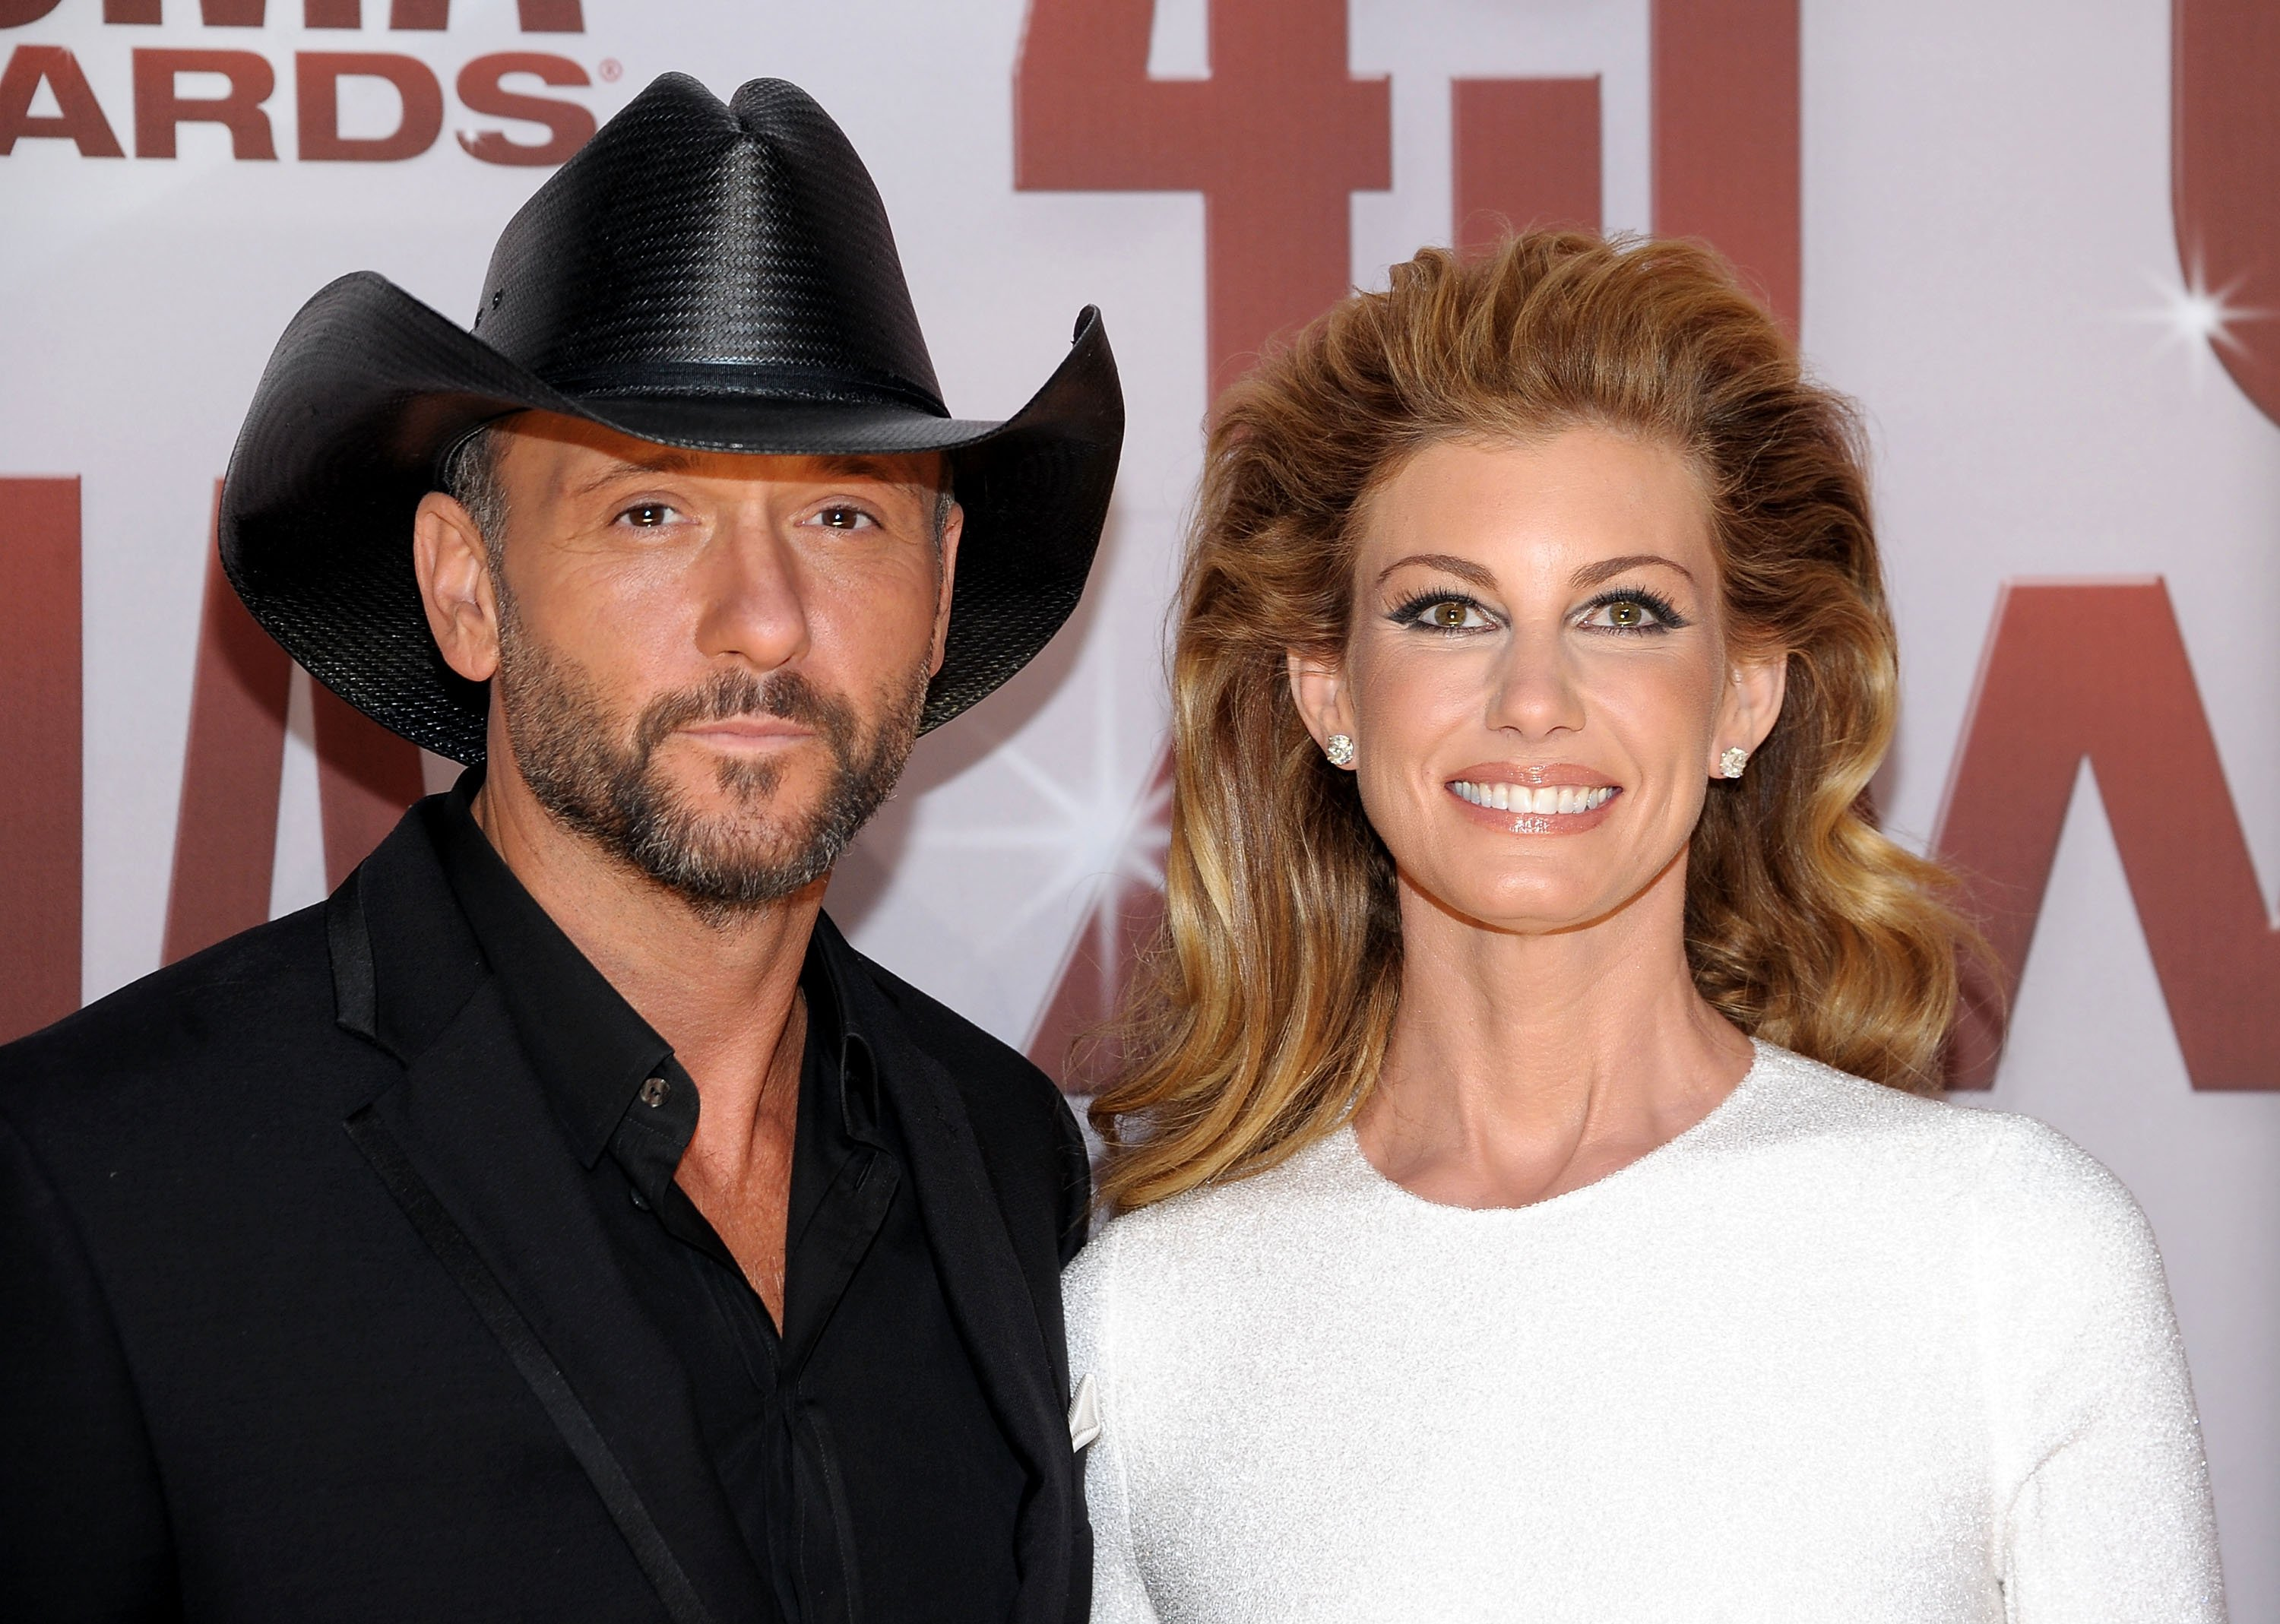 Tim McGraw and Faith Hill attend the 45th annual CMA Awards at the Bridgestone Arena on November 9, 2011 in Nashville, Tennessee. | Photo: GettyImagees